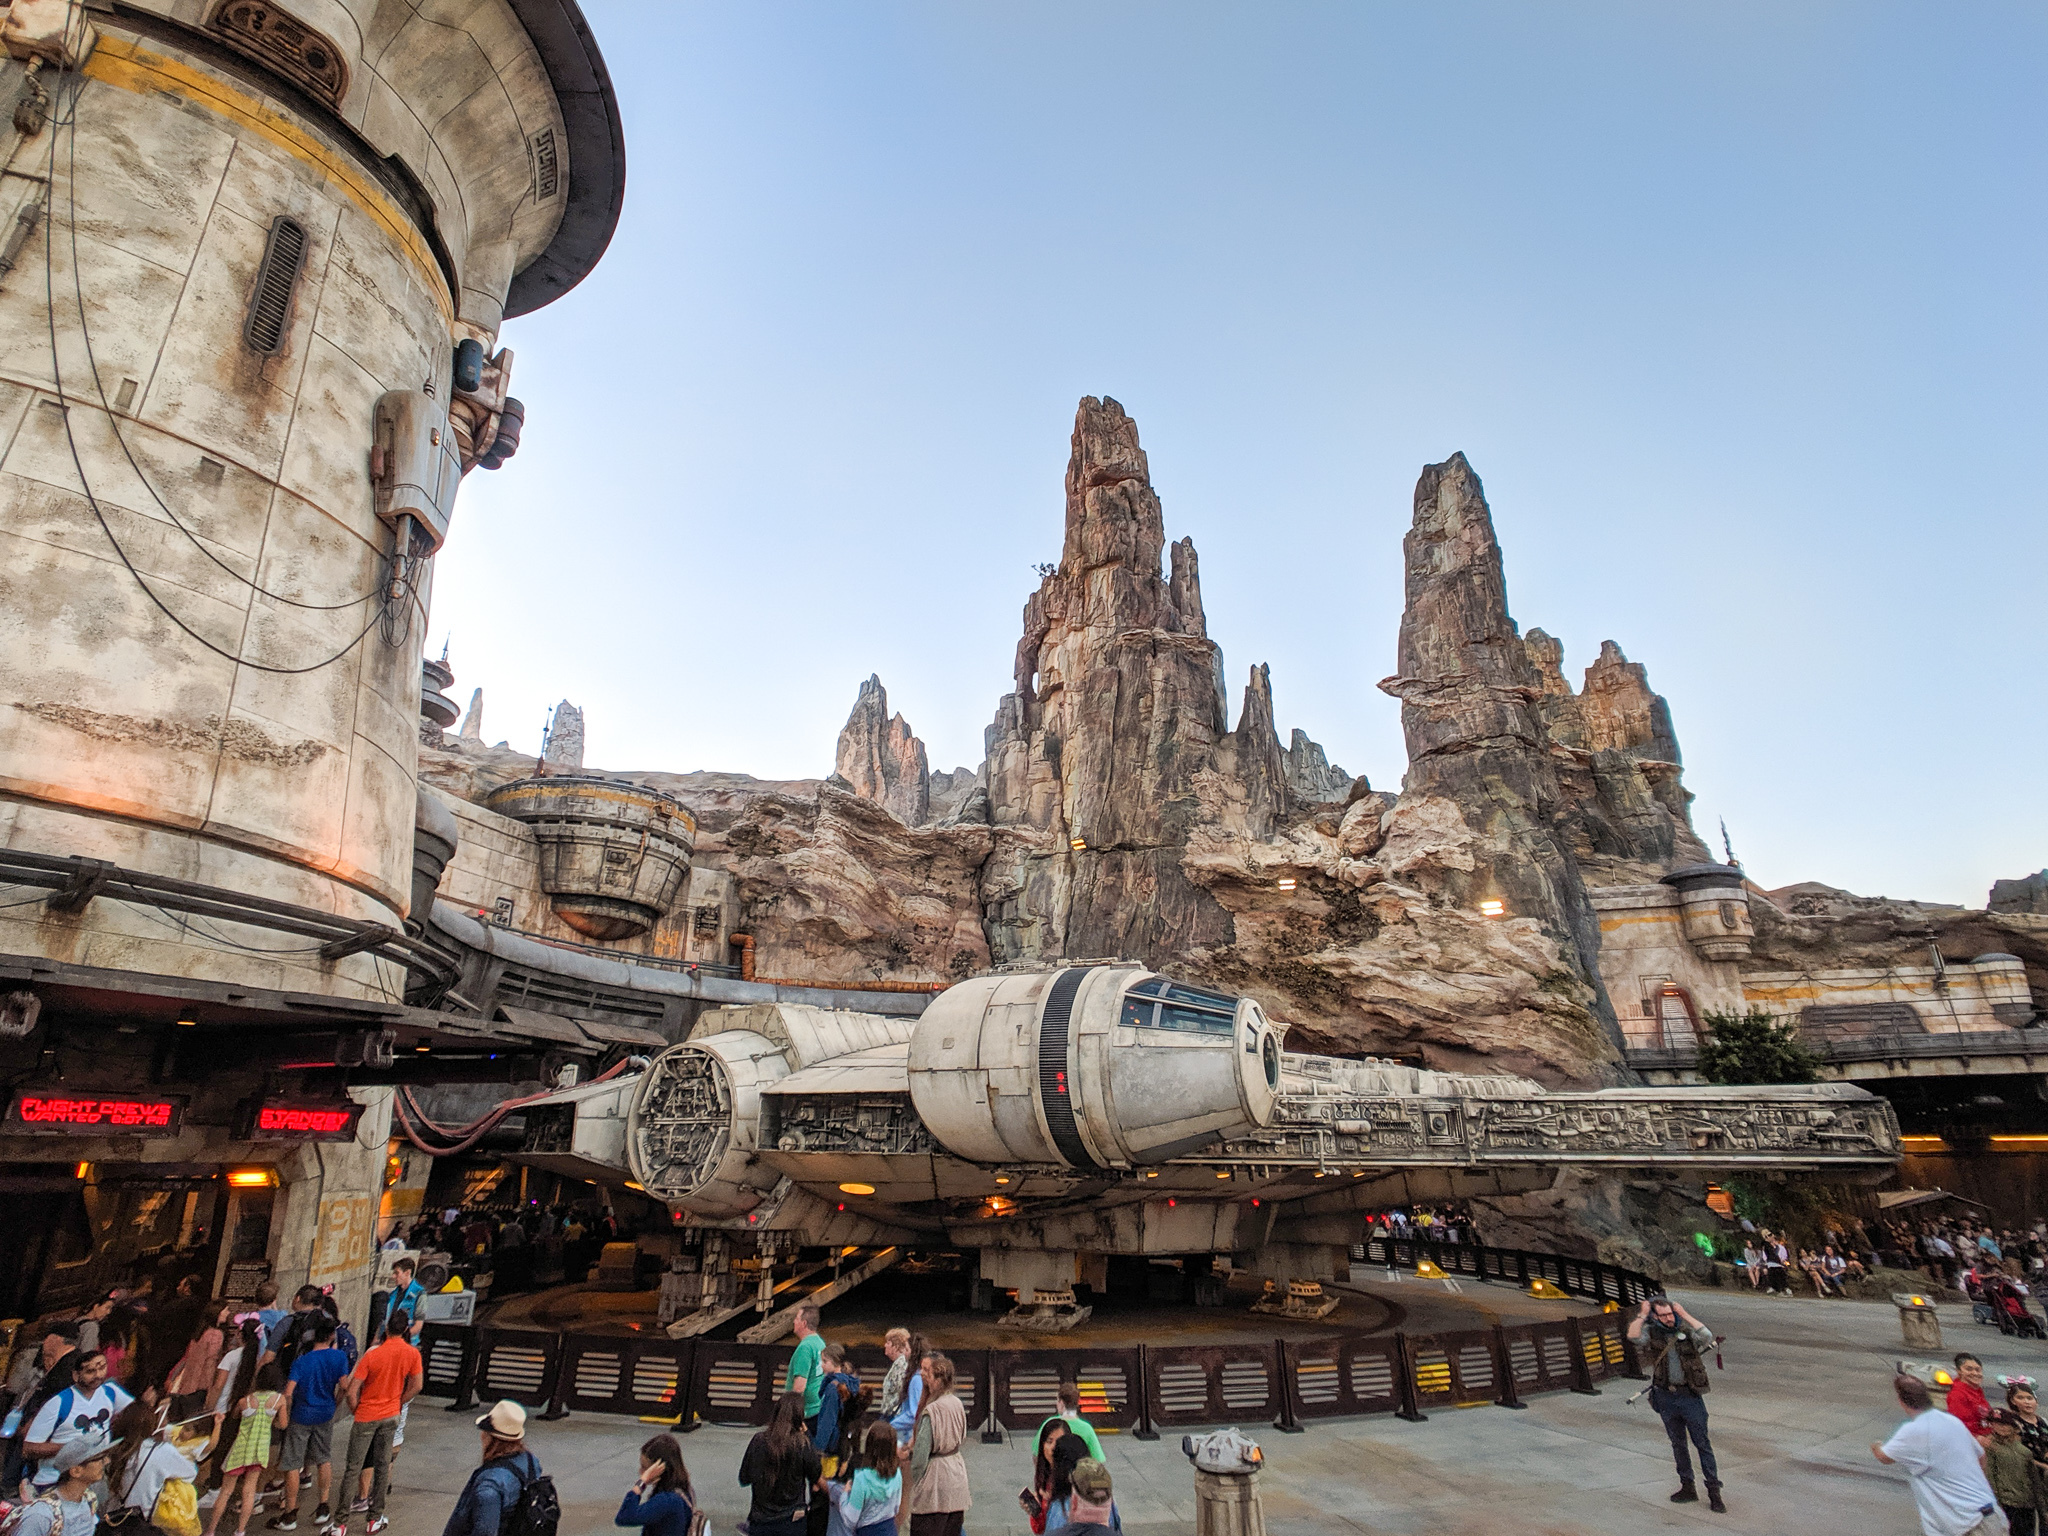 The 25 best Disneyland rides